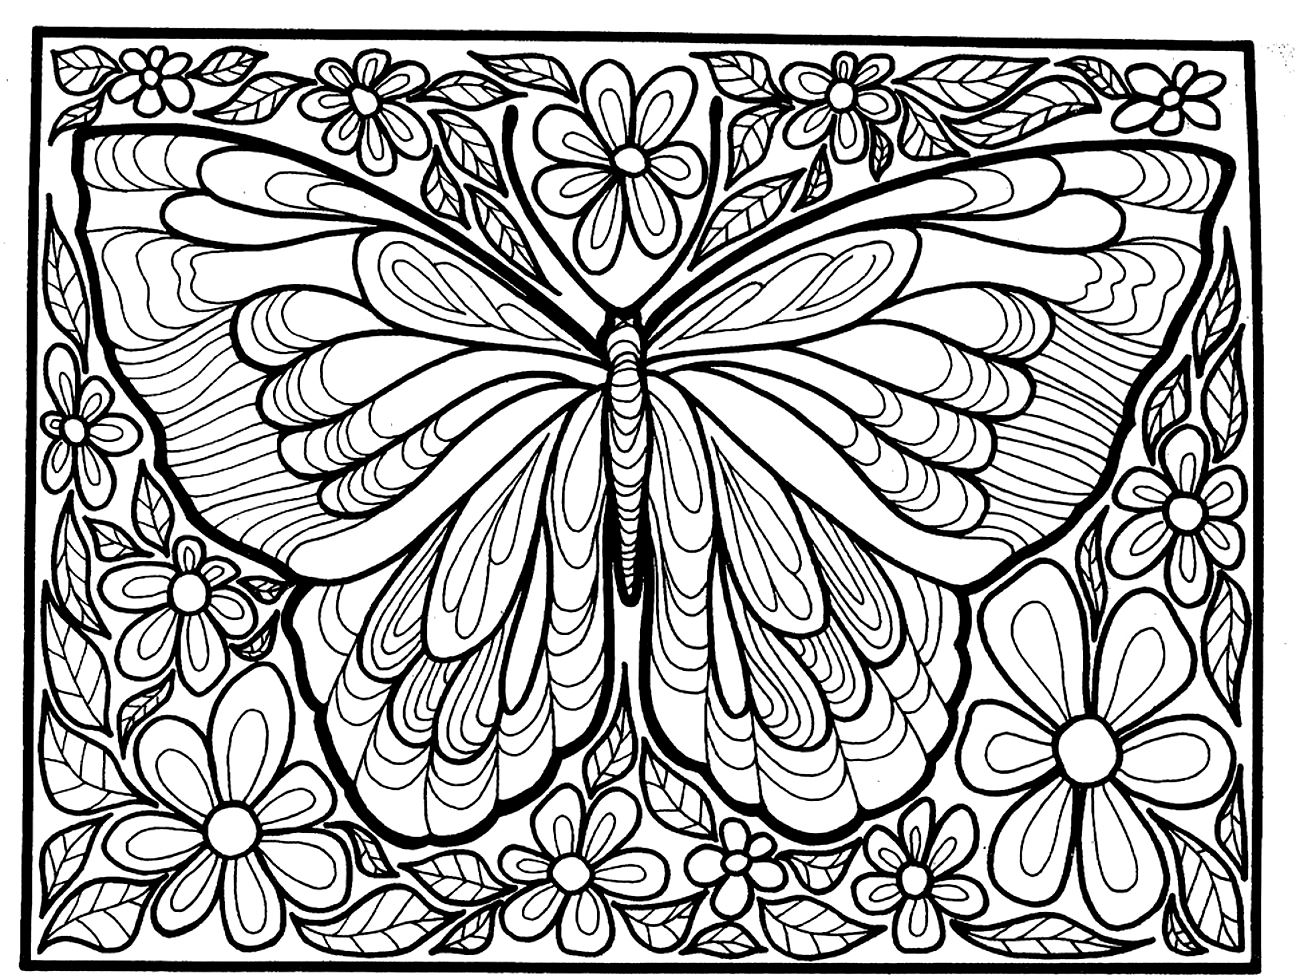 1300x979 Fun Coloring Pages For Adults To Print This Free Page Adult